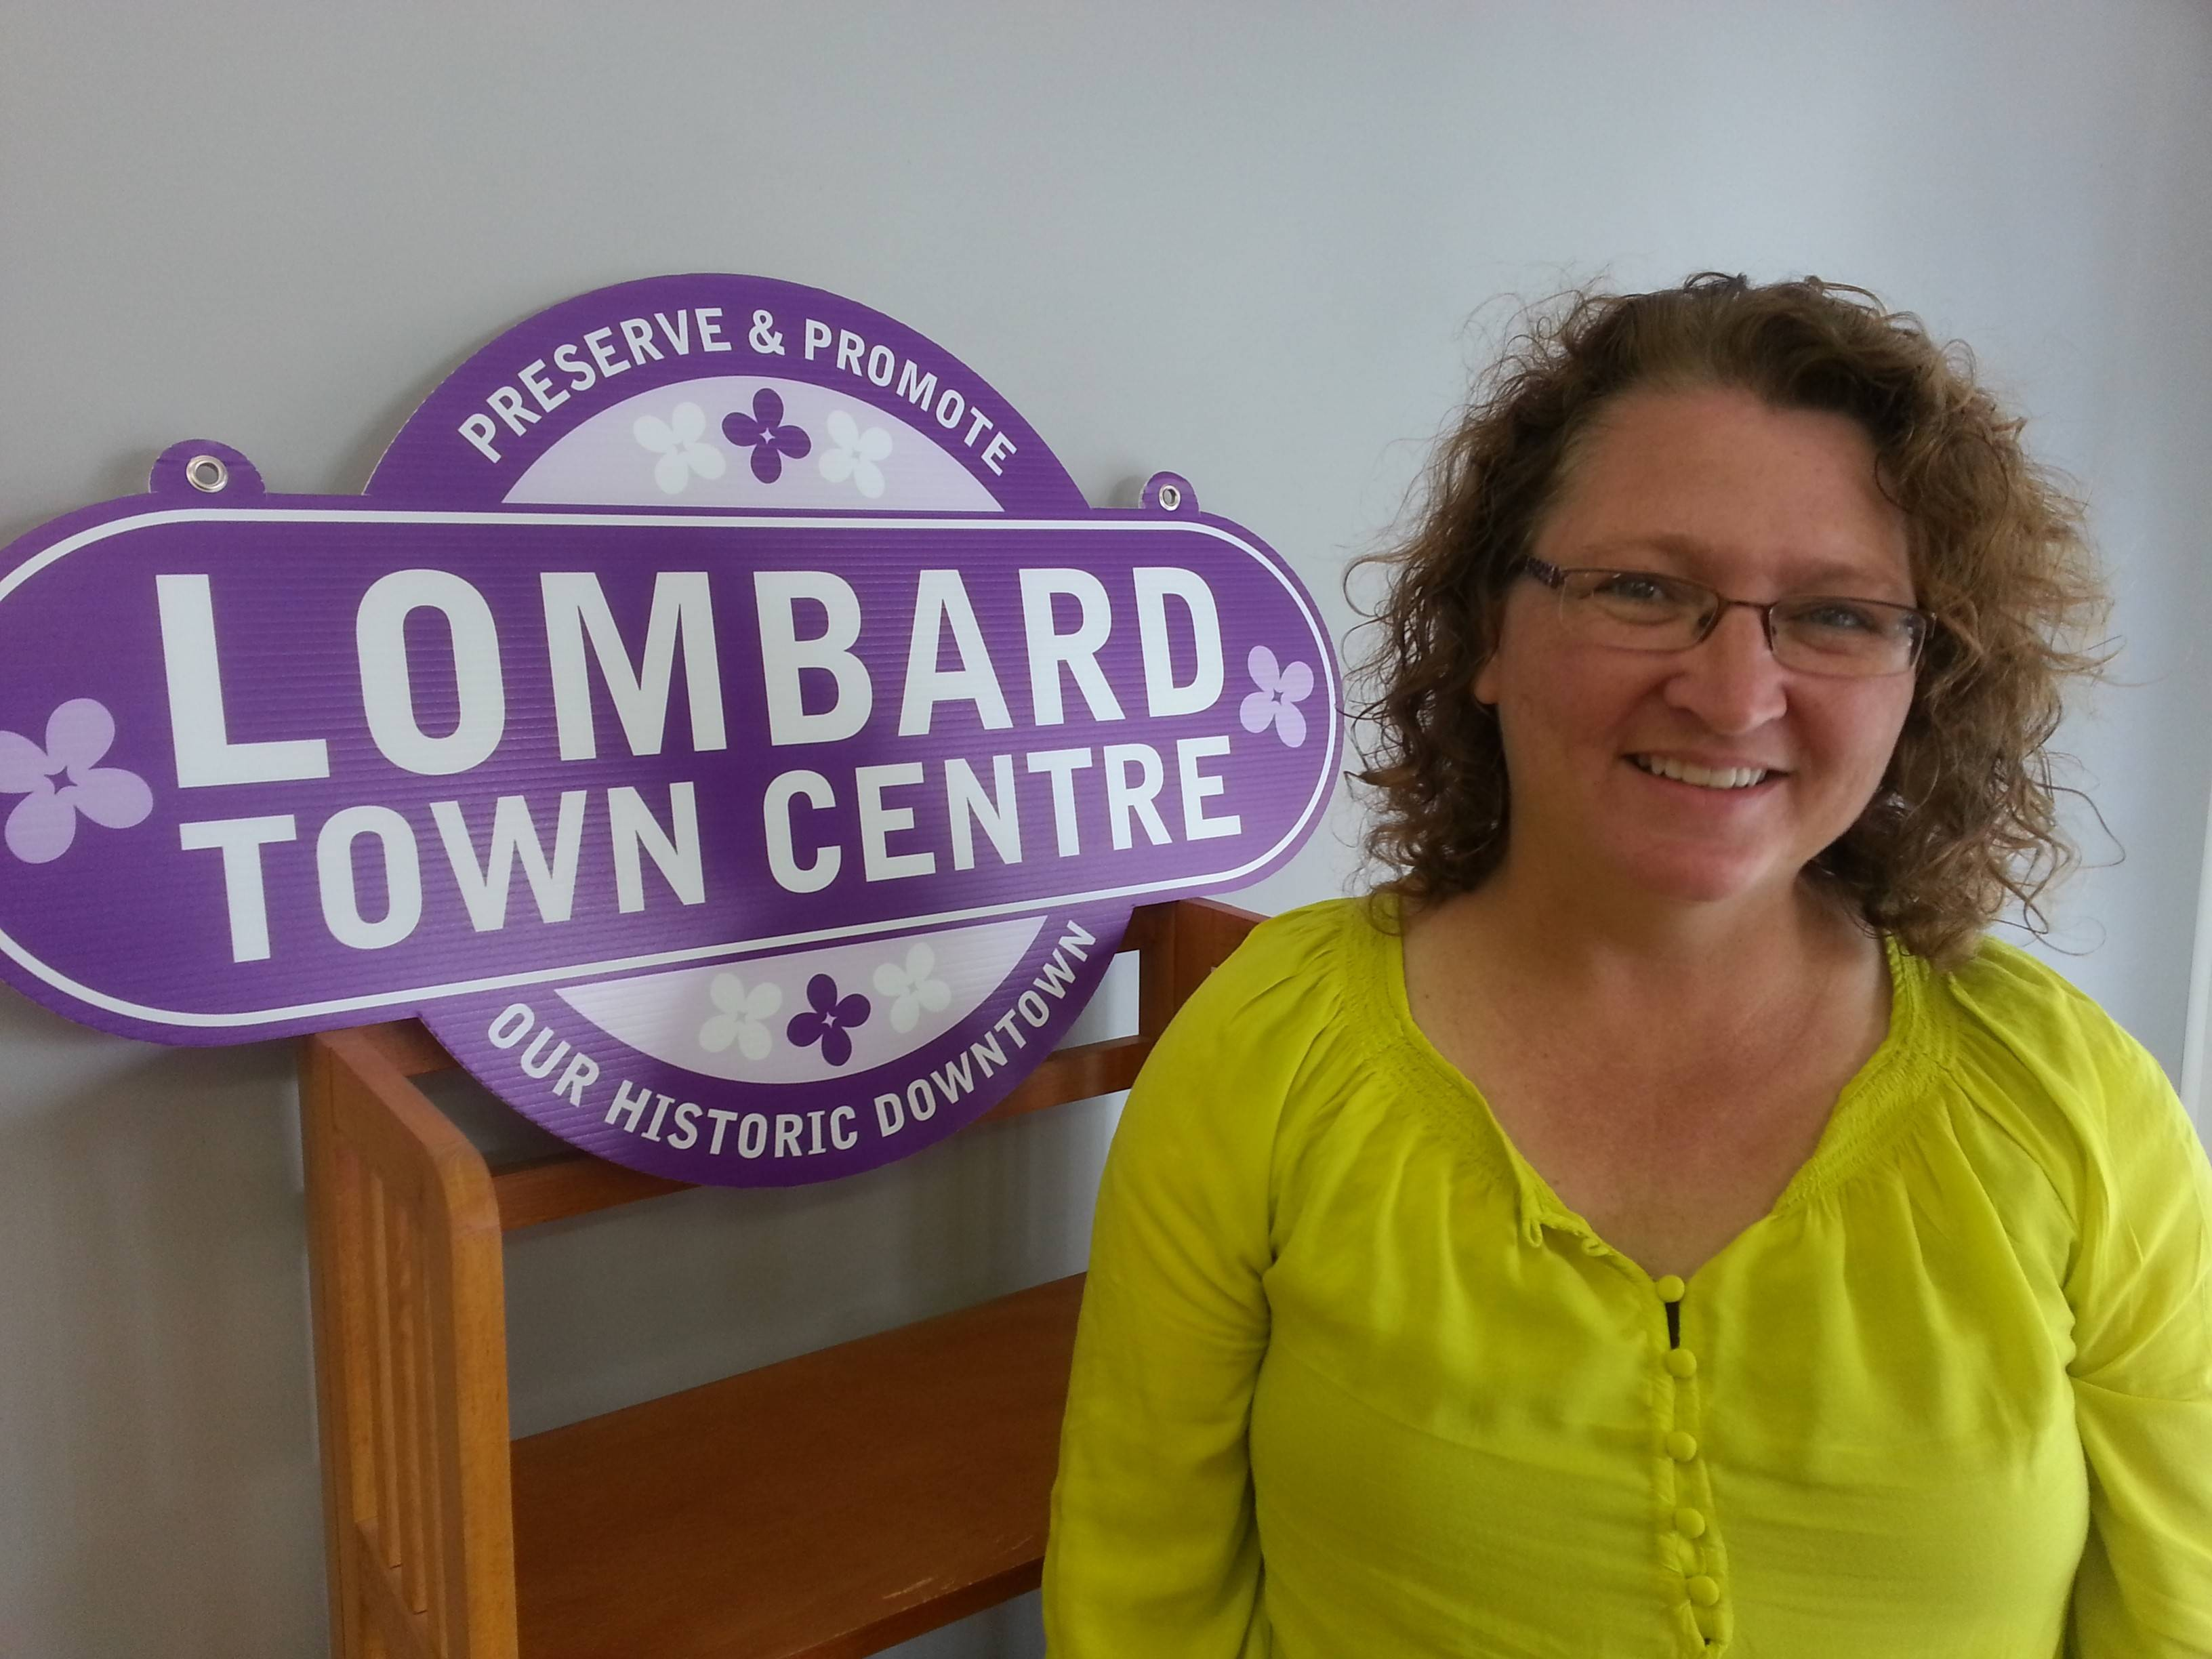 Sarah Richardt, executive director of Lombard Town Centre, says she's pleased with progress the downtown business promotion organization has made since she assumed her role last August.